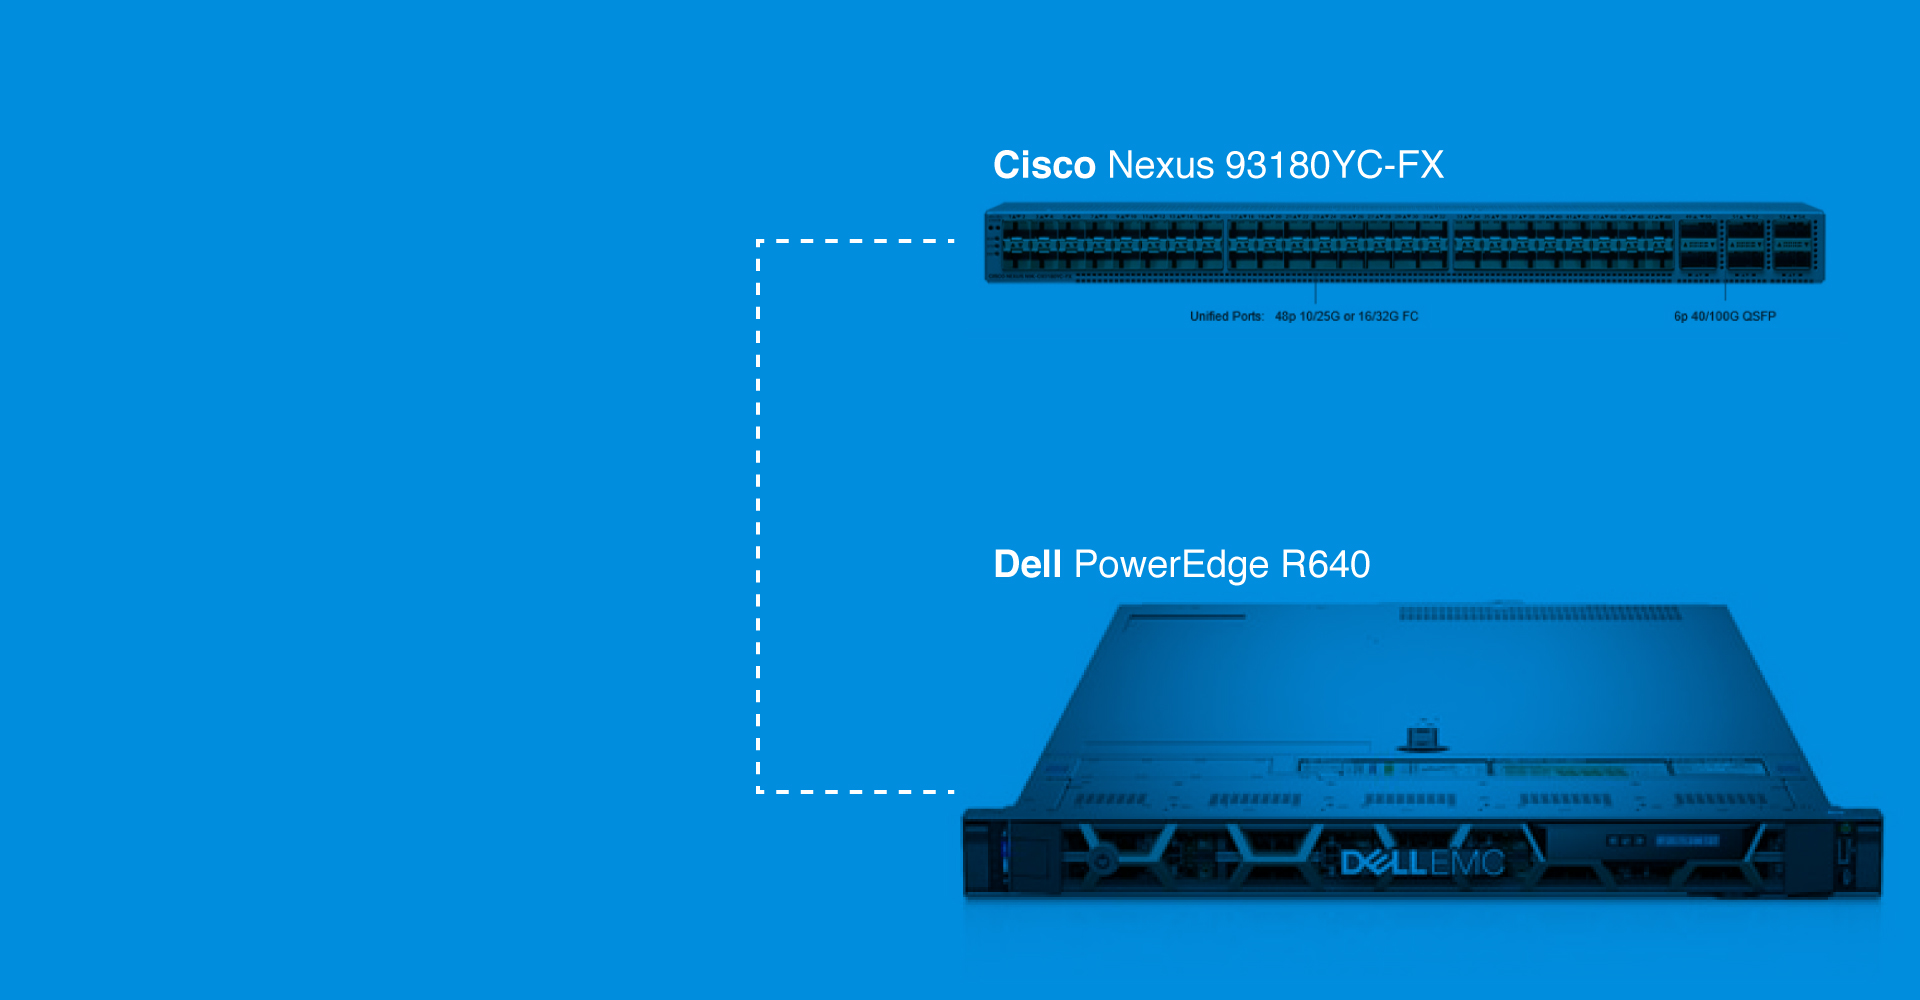 BUILD IT BETTER: Cisco Nexus 93180YC-FX to Dell PowerEdge R640